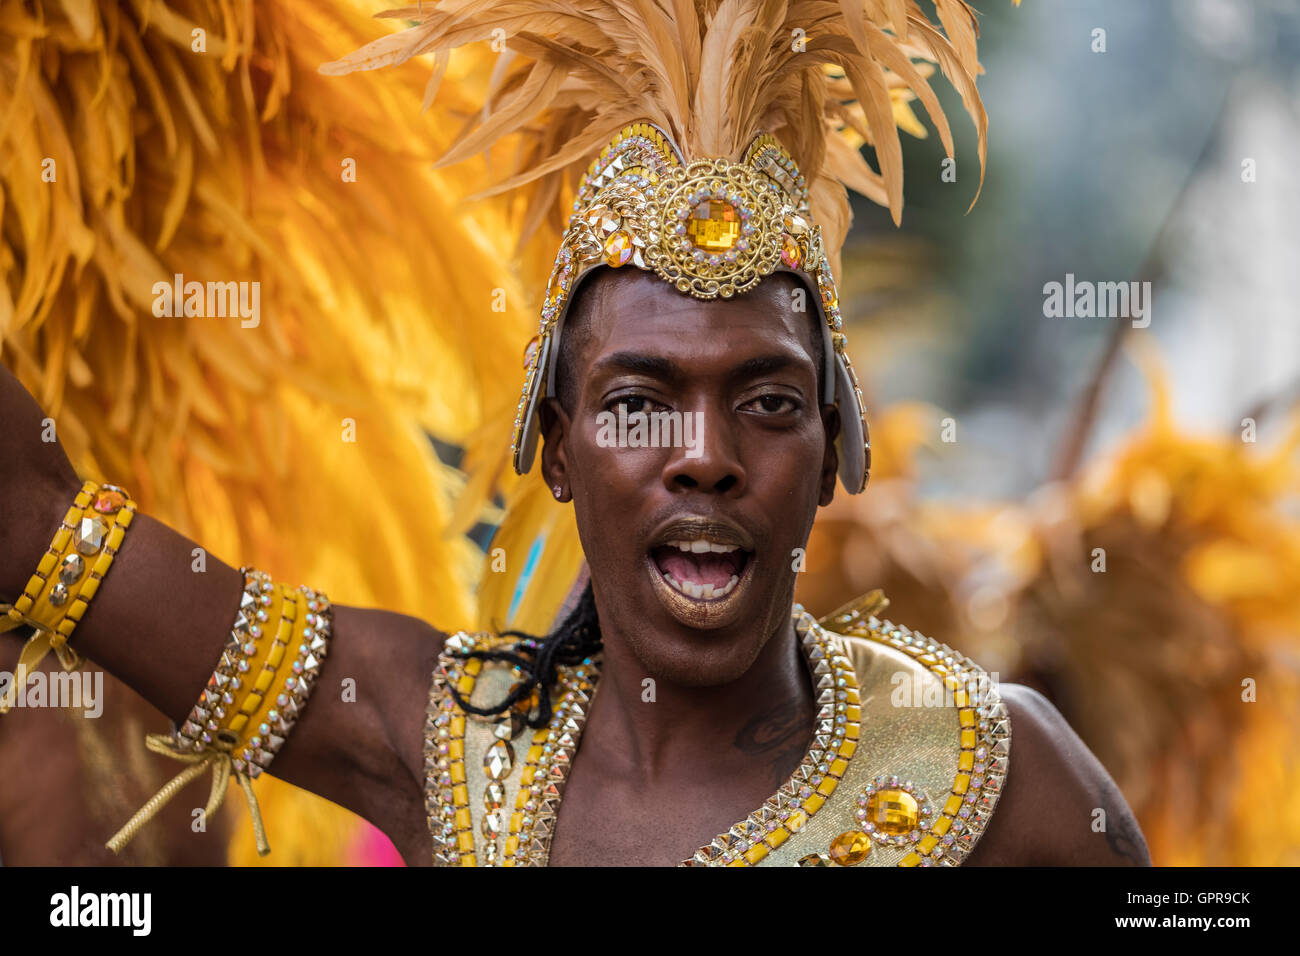 Afro Caribbean black man in costume with a yellow feather headdress at the Notting Hill carnival in West London - Stock Image